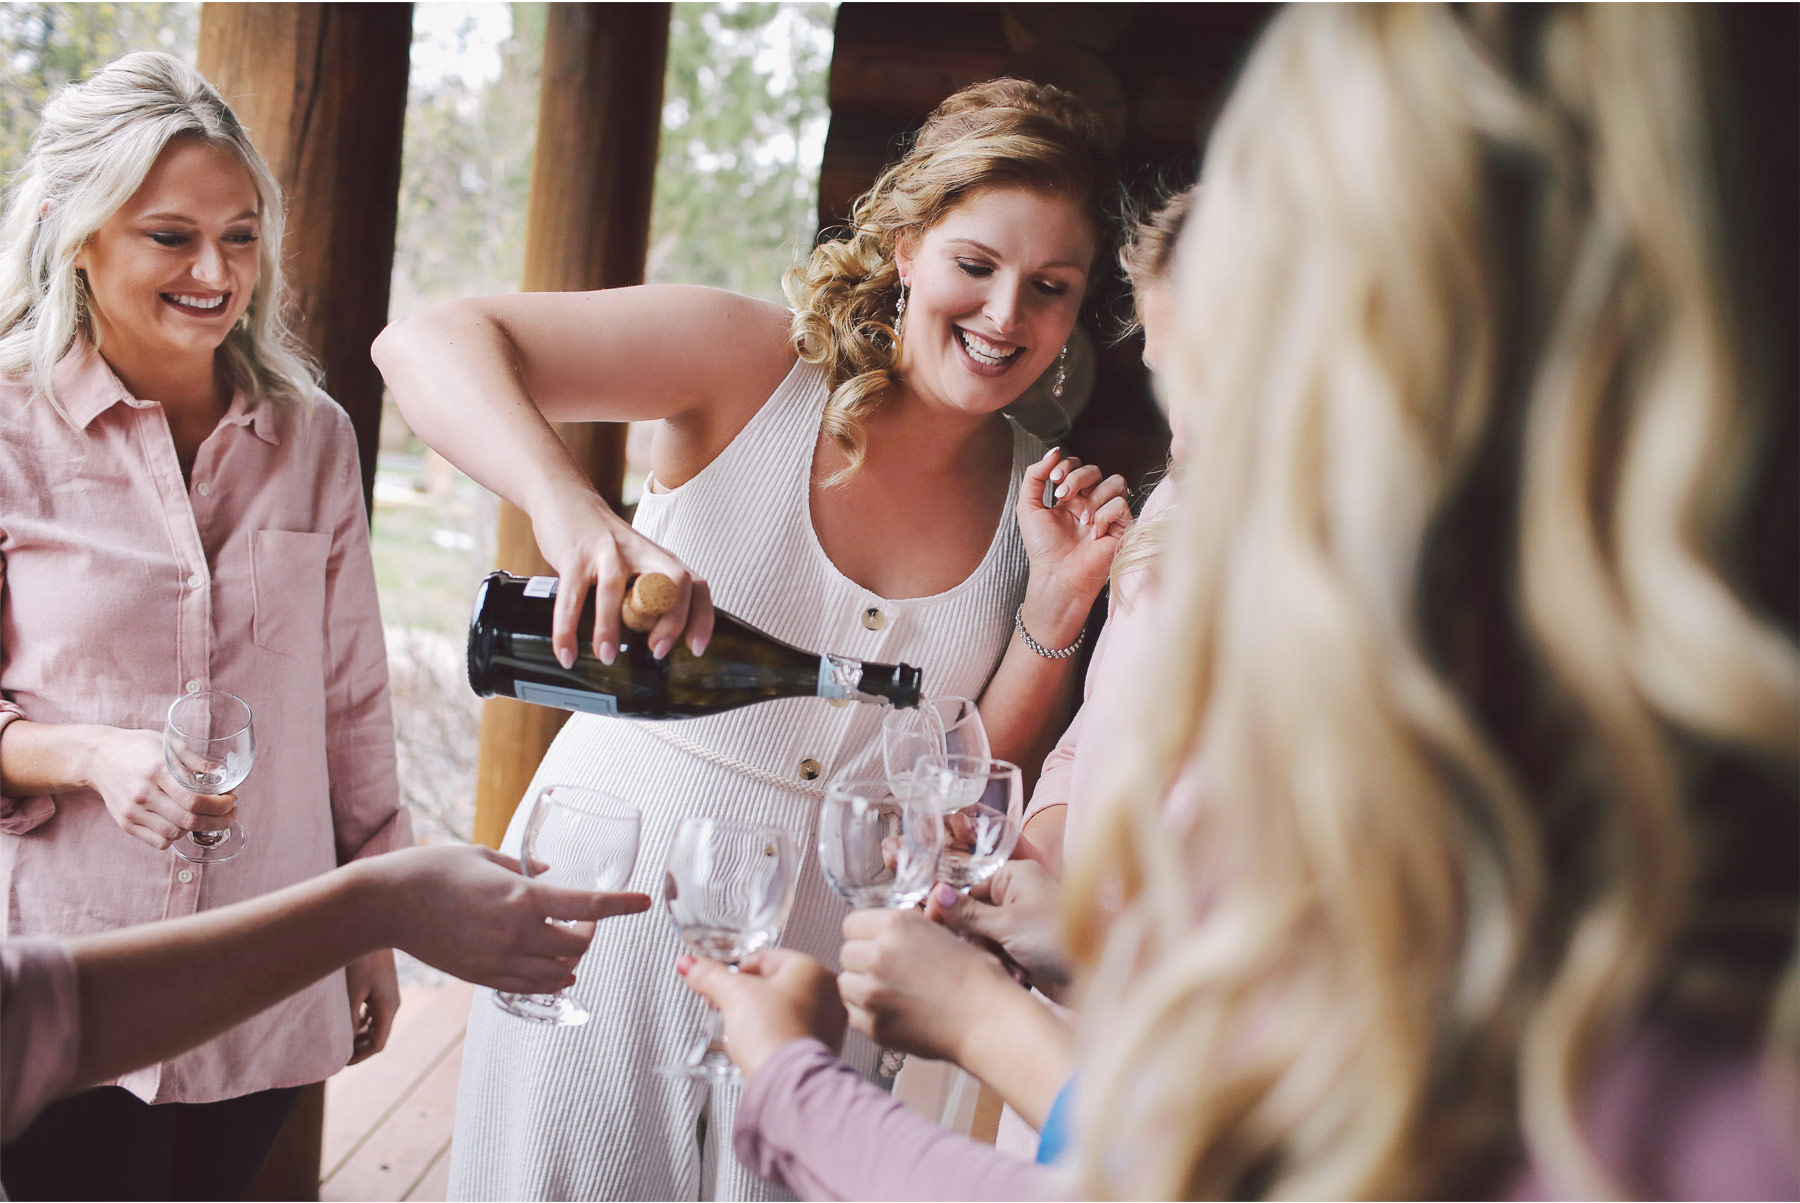 02-Minnesota-Wedding-by-Andrew-Vick-Photography-Grand-Superior-Lodge-Duluth-Two-Harbors-Champagne-Bridesmaids-Toast-Veronica-and-Tyler.jpg